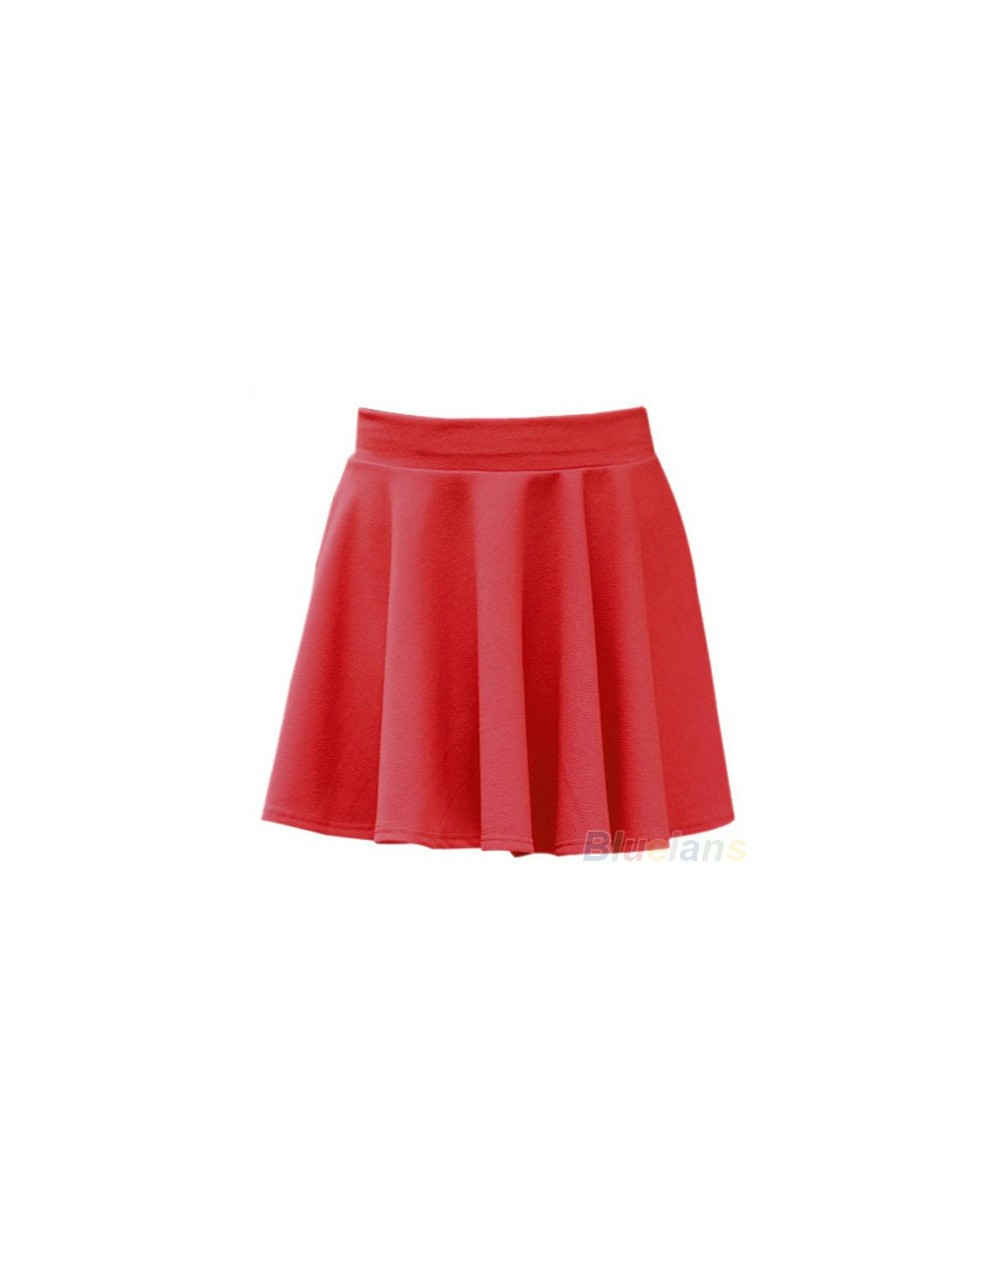 Women's Candy Color Stretch Waist Pleated Jersey Plain Skater Flared Mini Skirts - Red - 4S3031265582-8